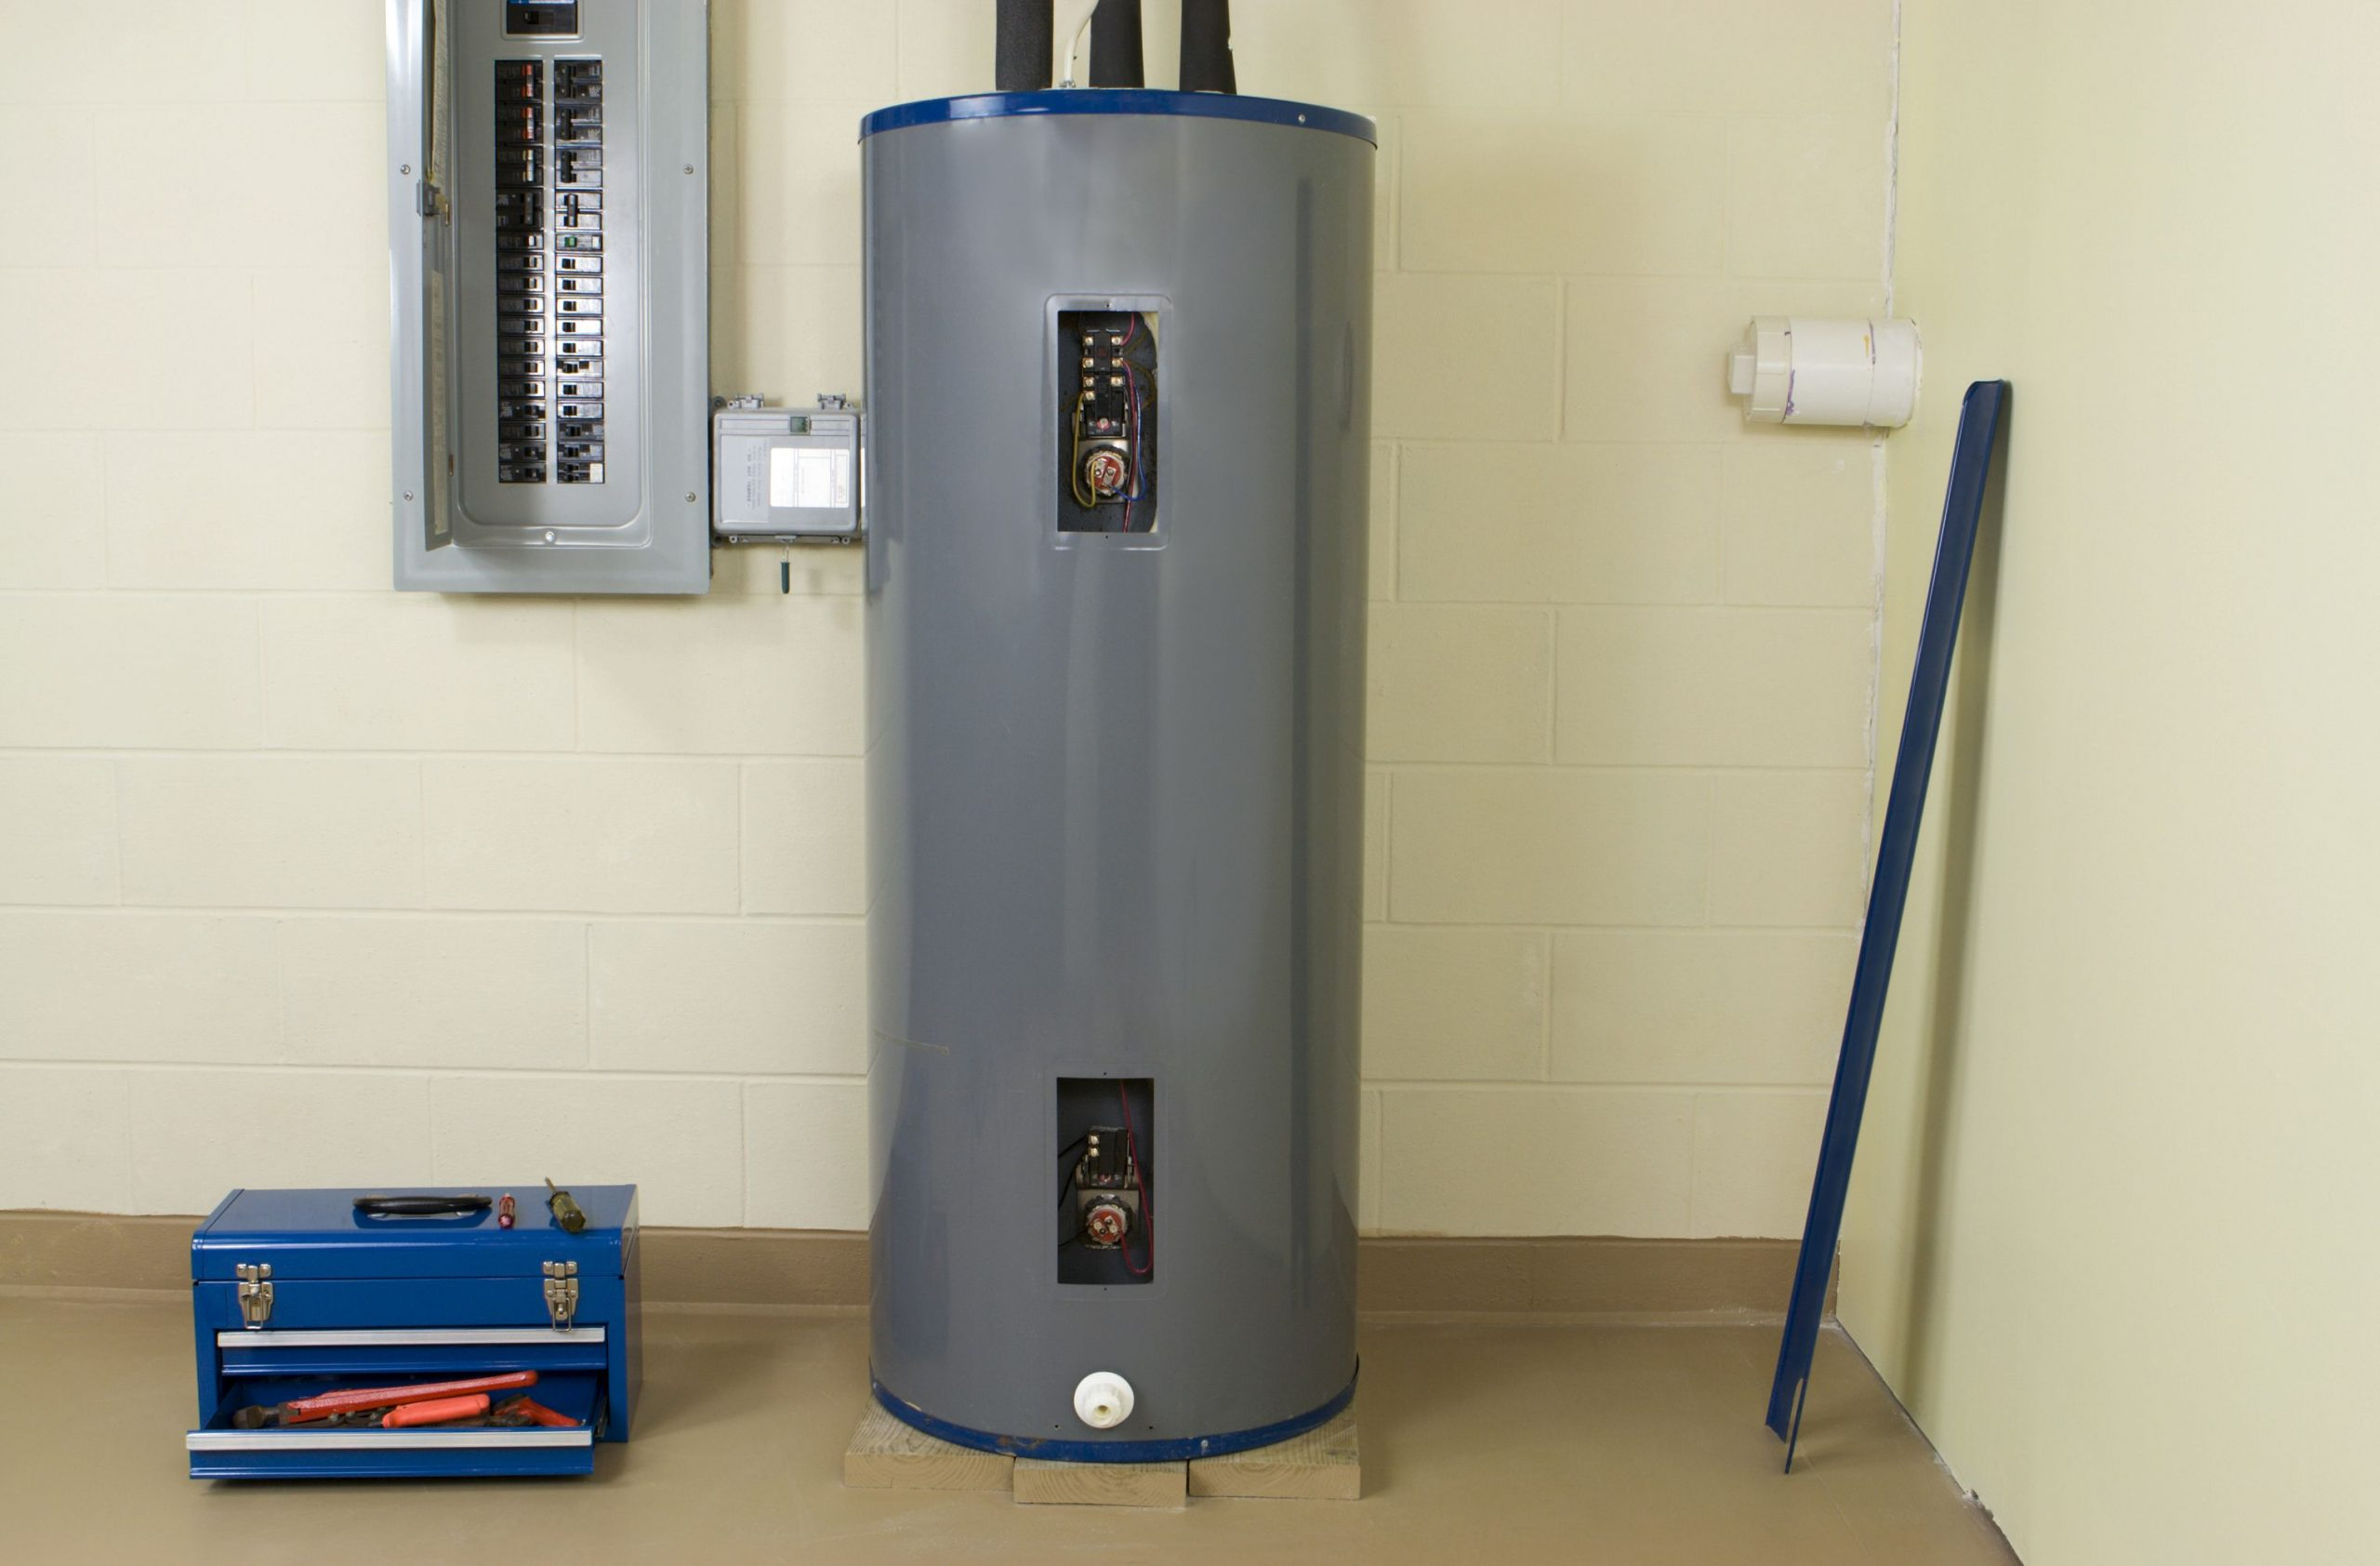 How can I tell if I need a water heater replacement?